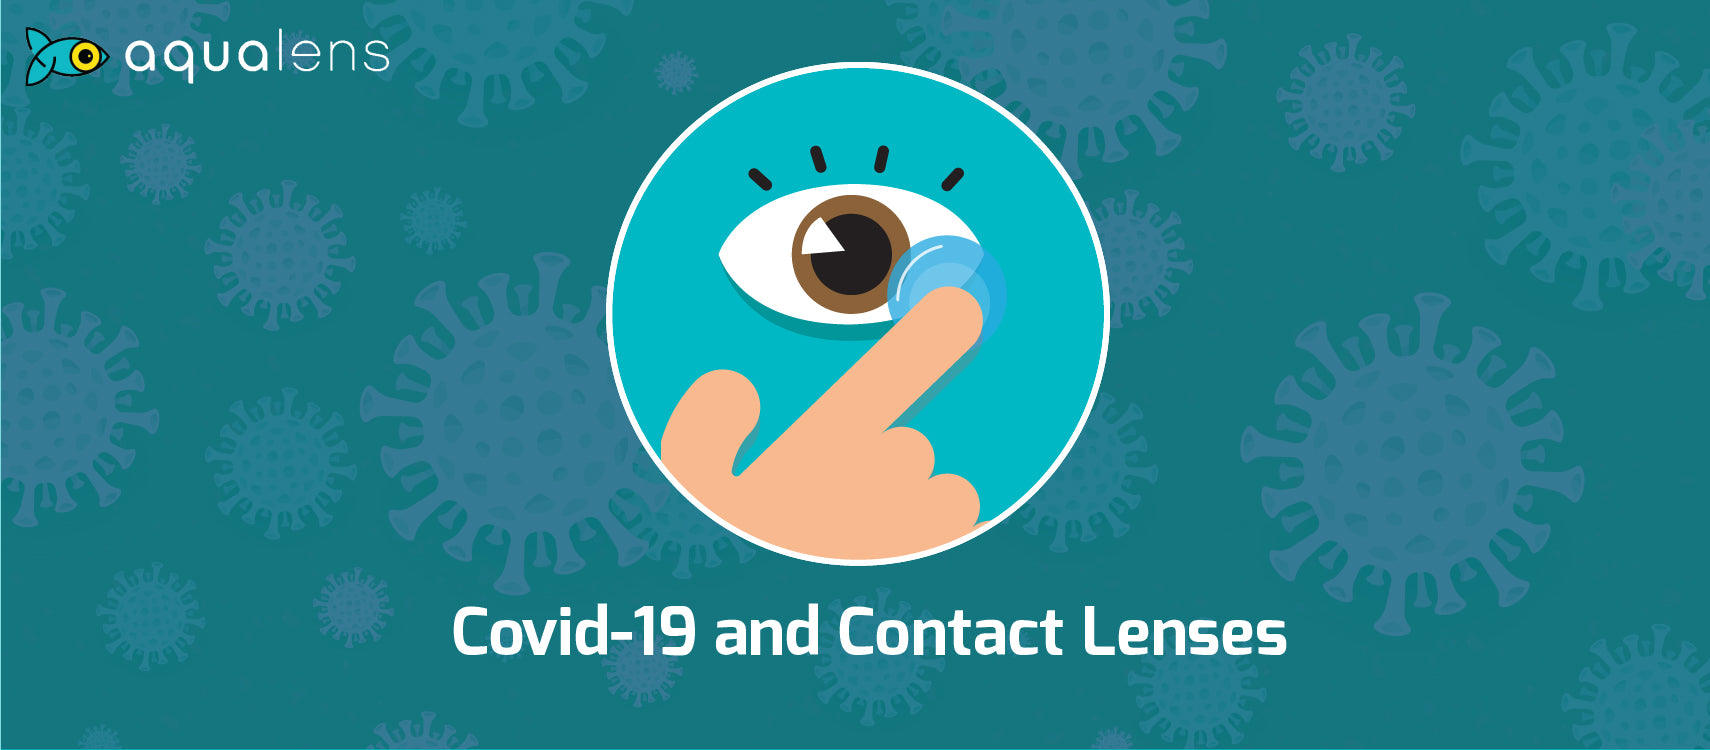 Wearing Contact Lenses During Covid-19